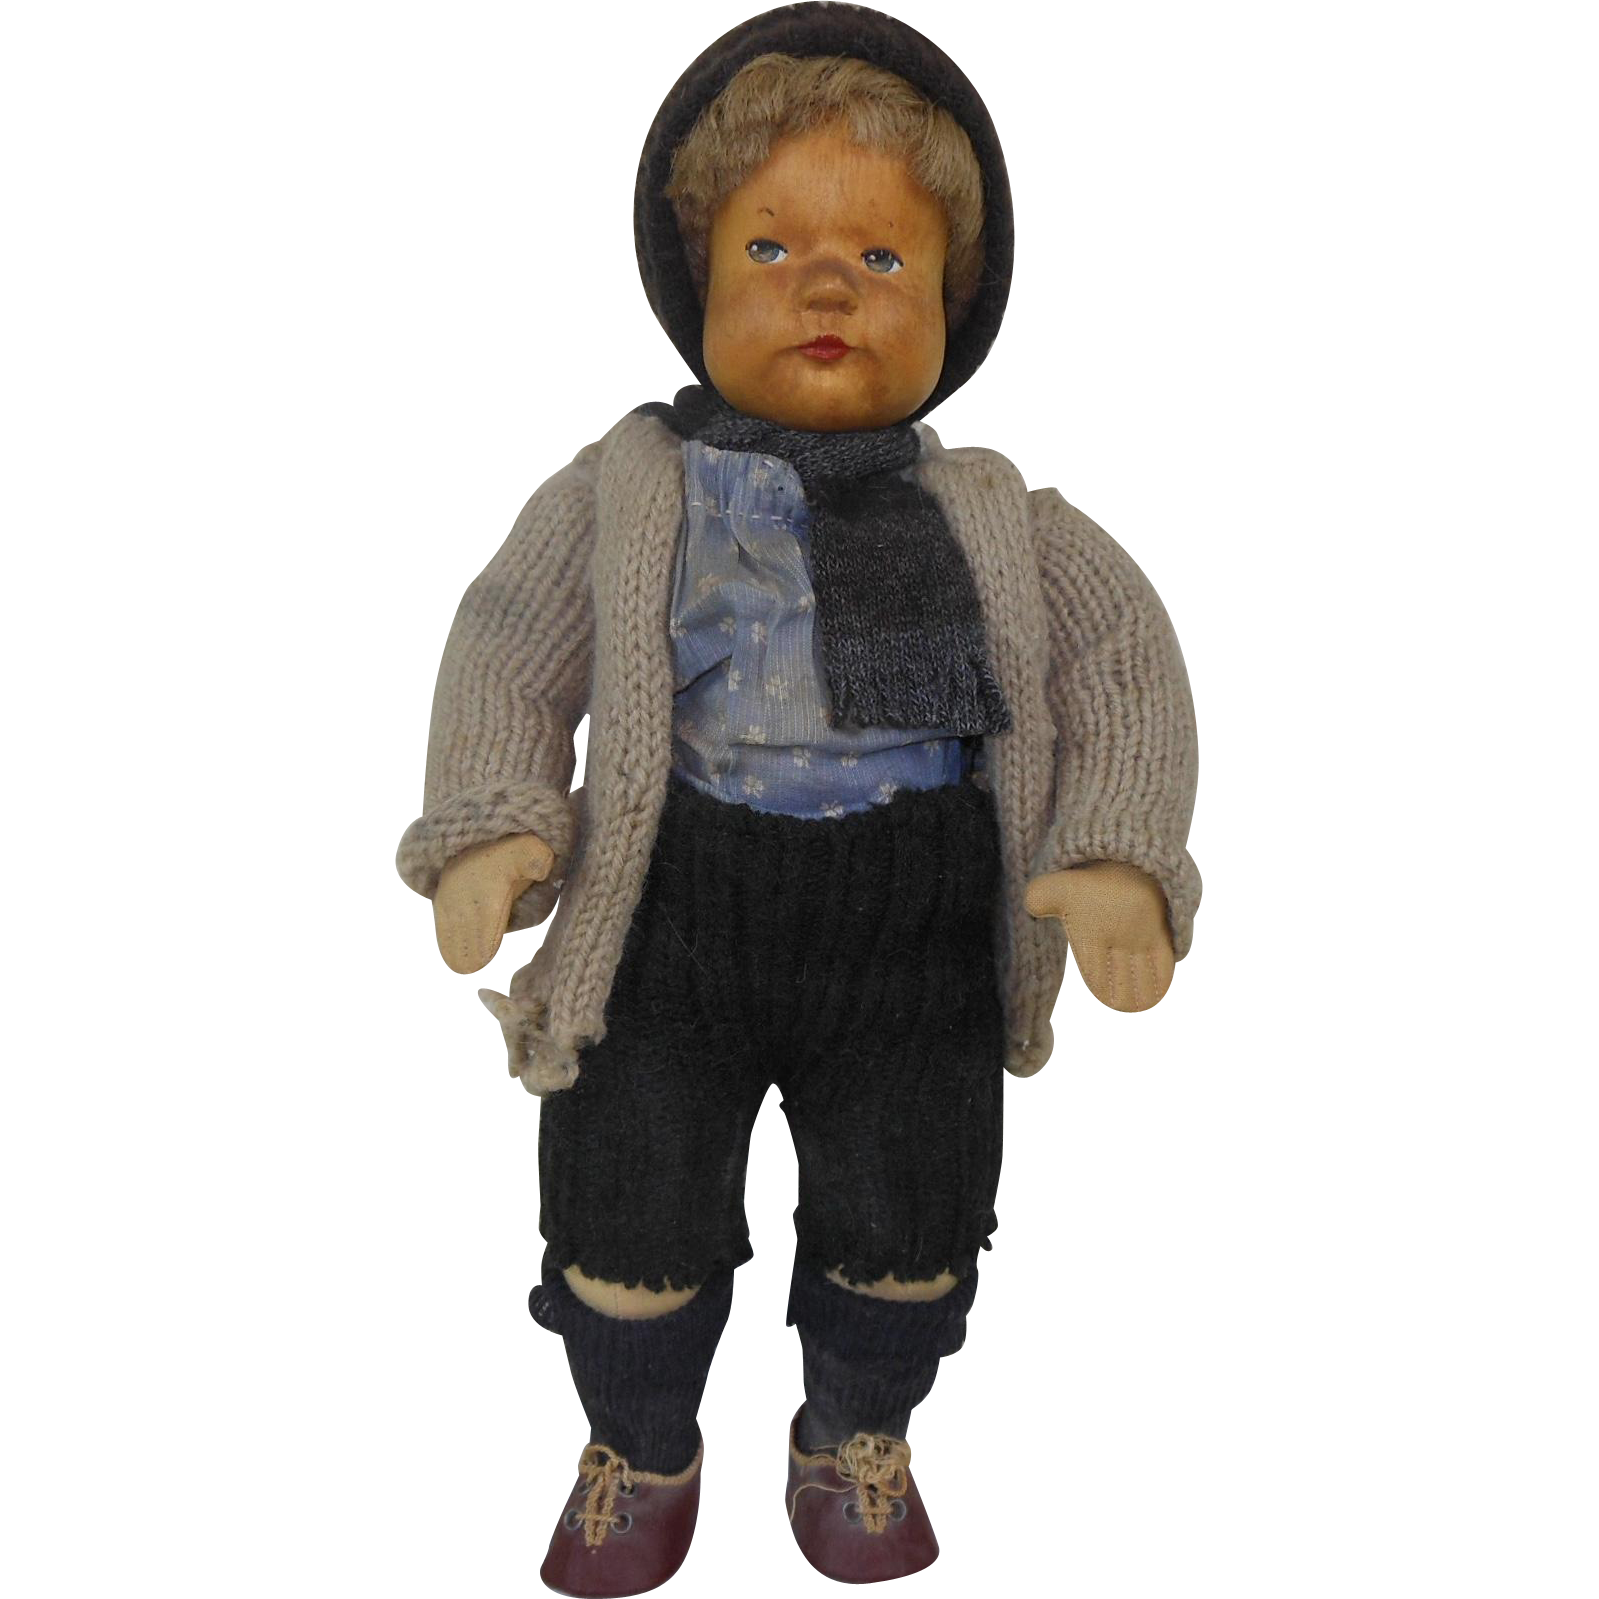 Wooden Knitting Doll : S krahmer wooden head german doll with knitted outfit